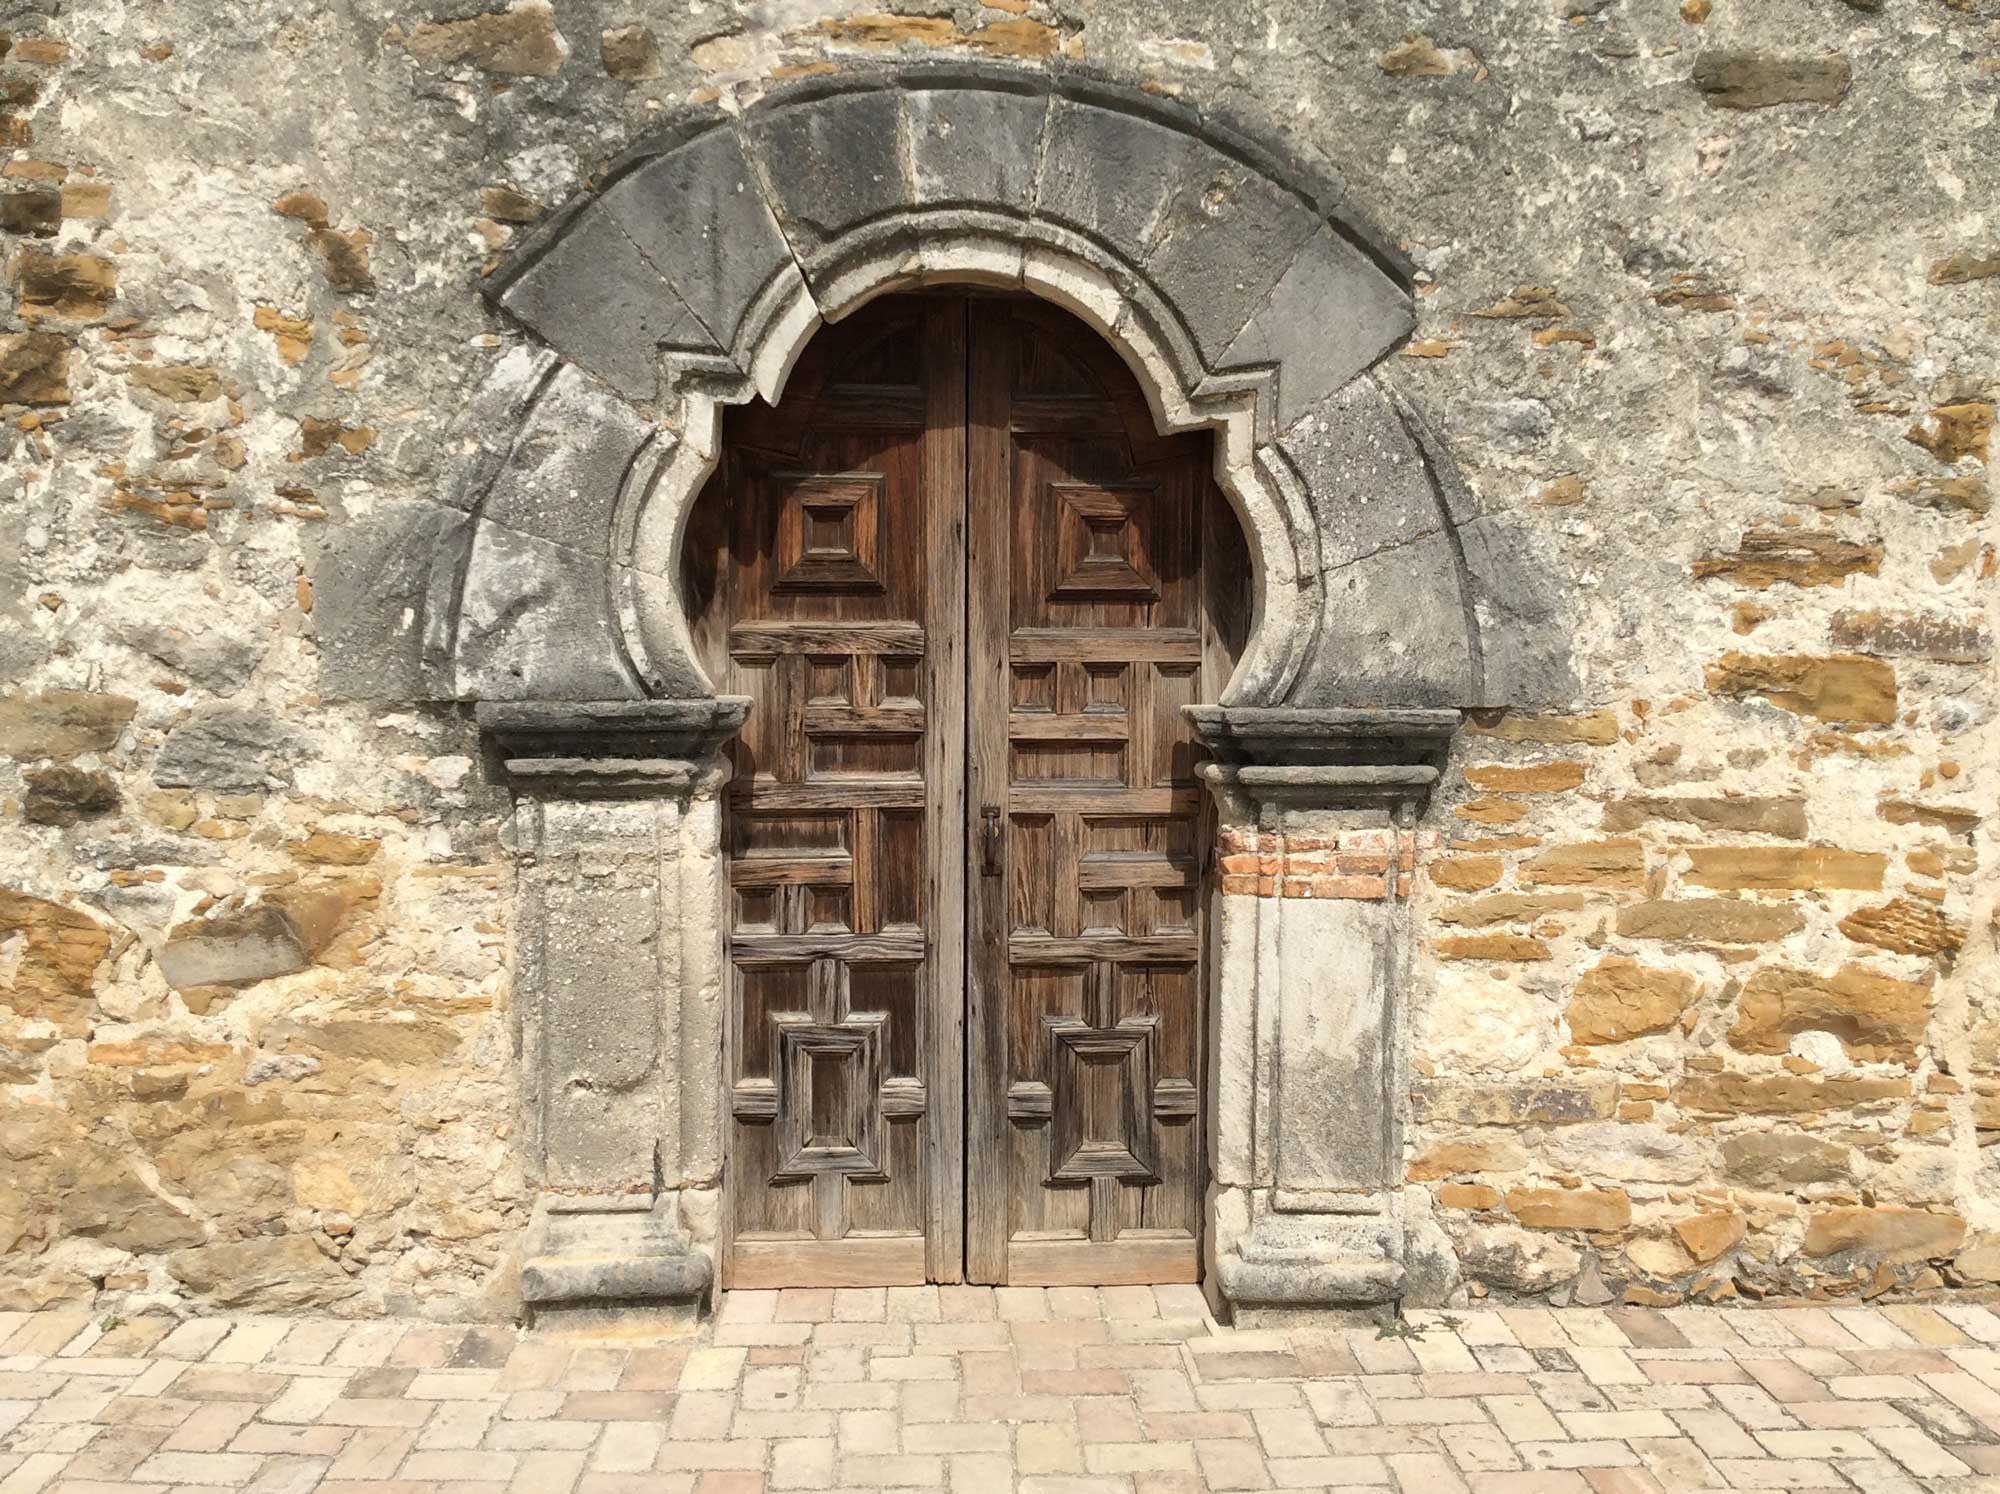 1494 #967335  Glimpse Of What A Bike Tour Of The San Antonio Missions Looks Like picture/photo Entry Doors San Antonio 38992000